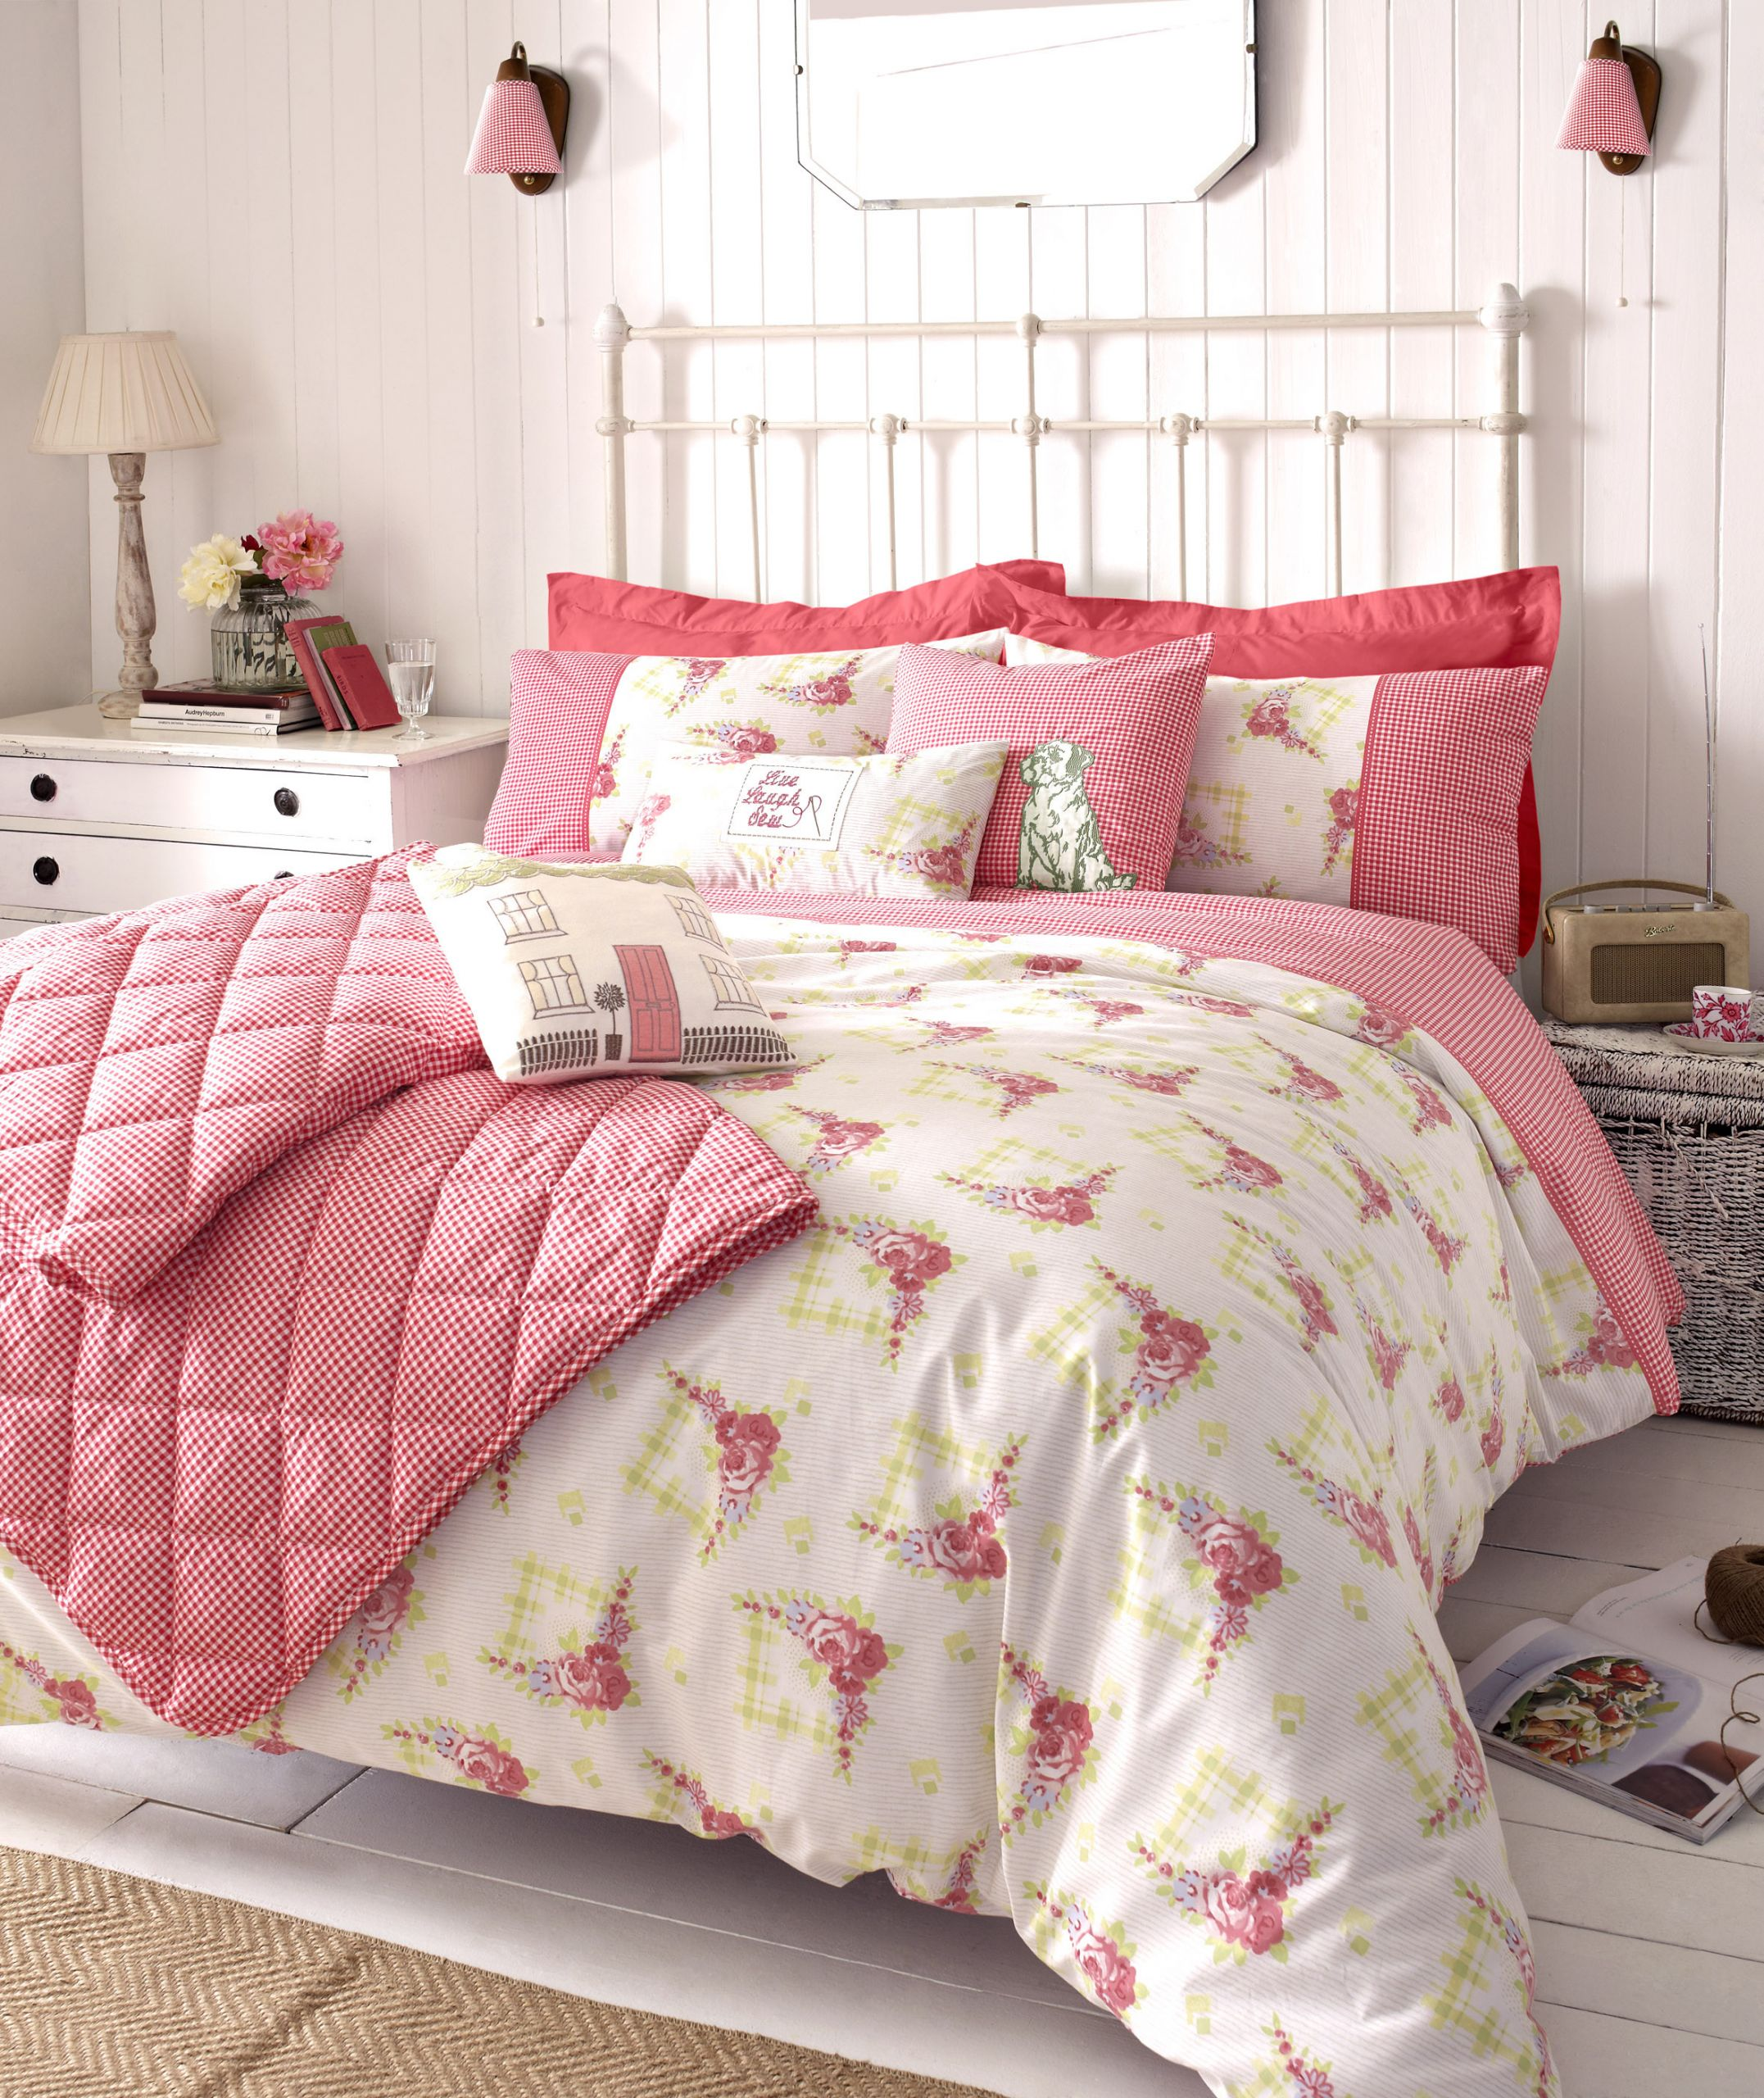 Pink Shabby Chic Bedroom  Must Have Essentials in Bedroom